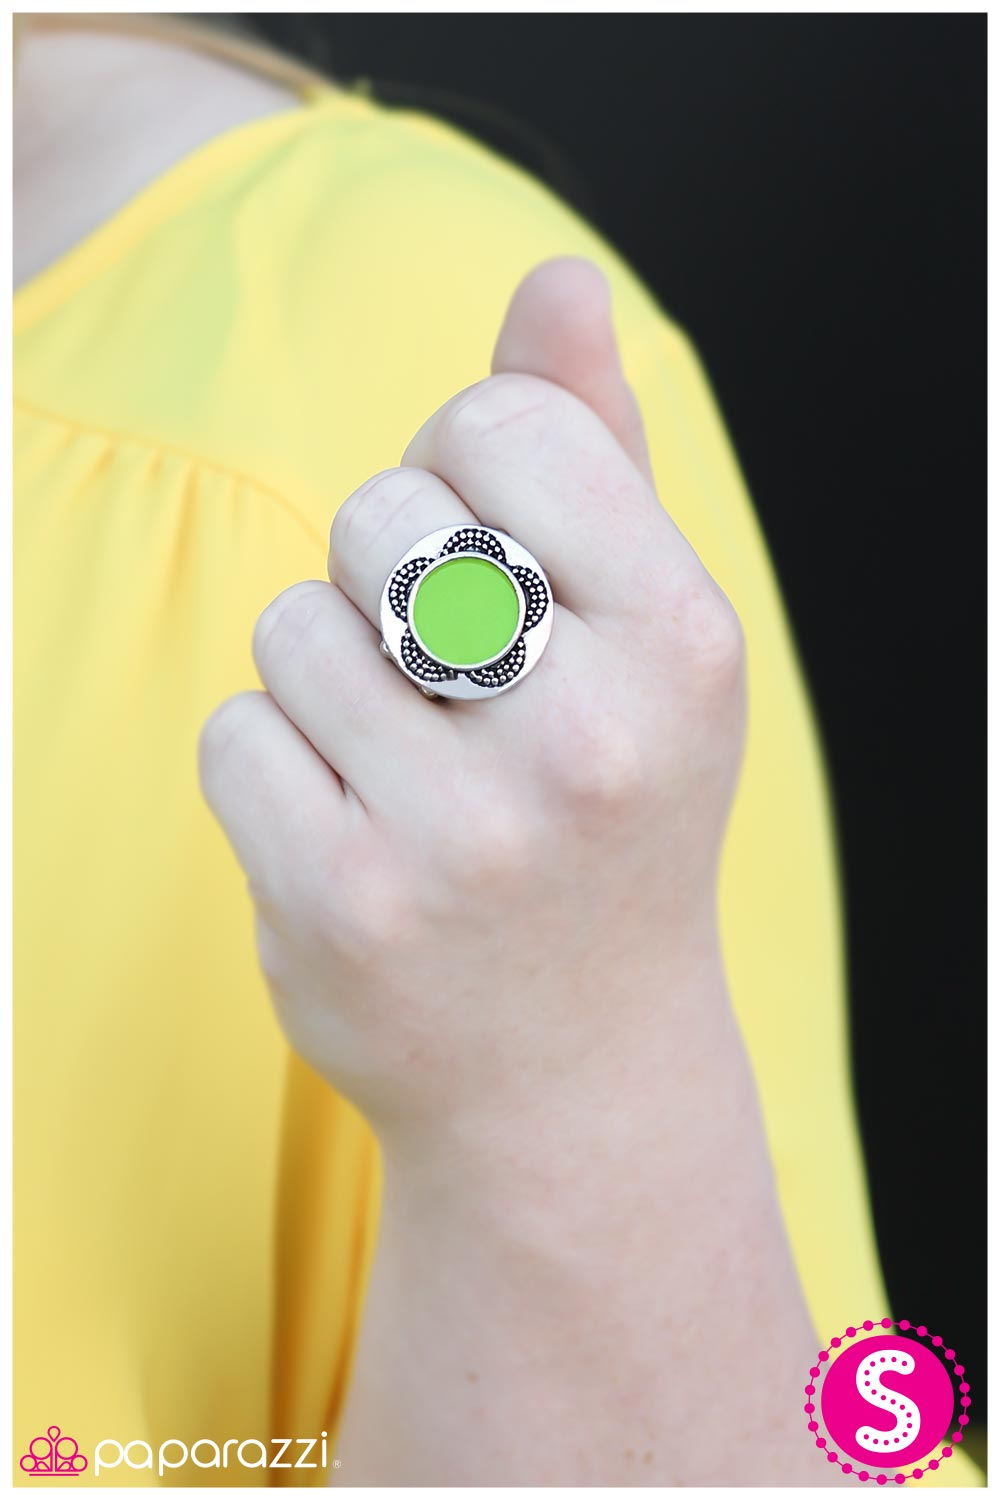 A Sunny Disposition - Green - Paparazzi ring